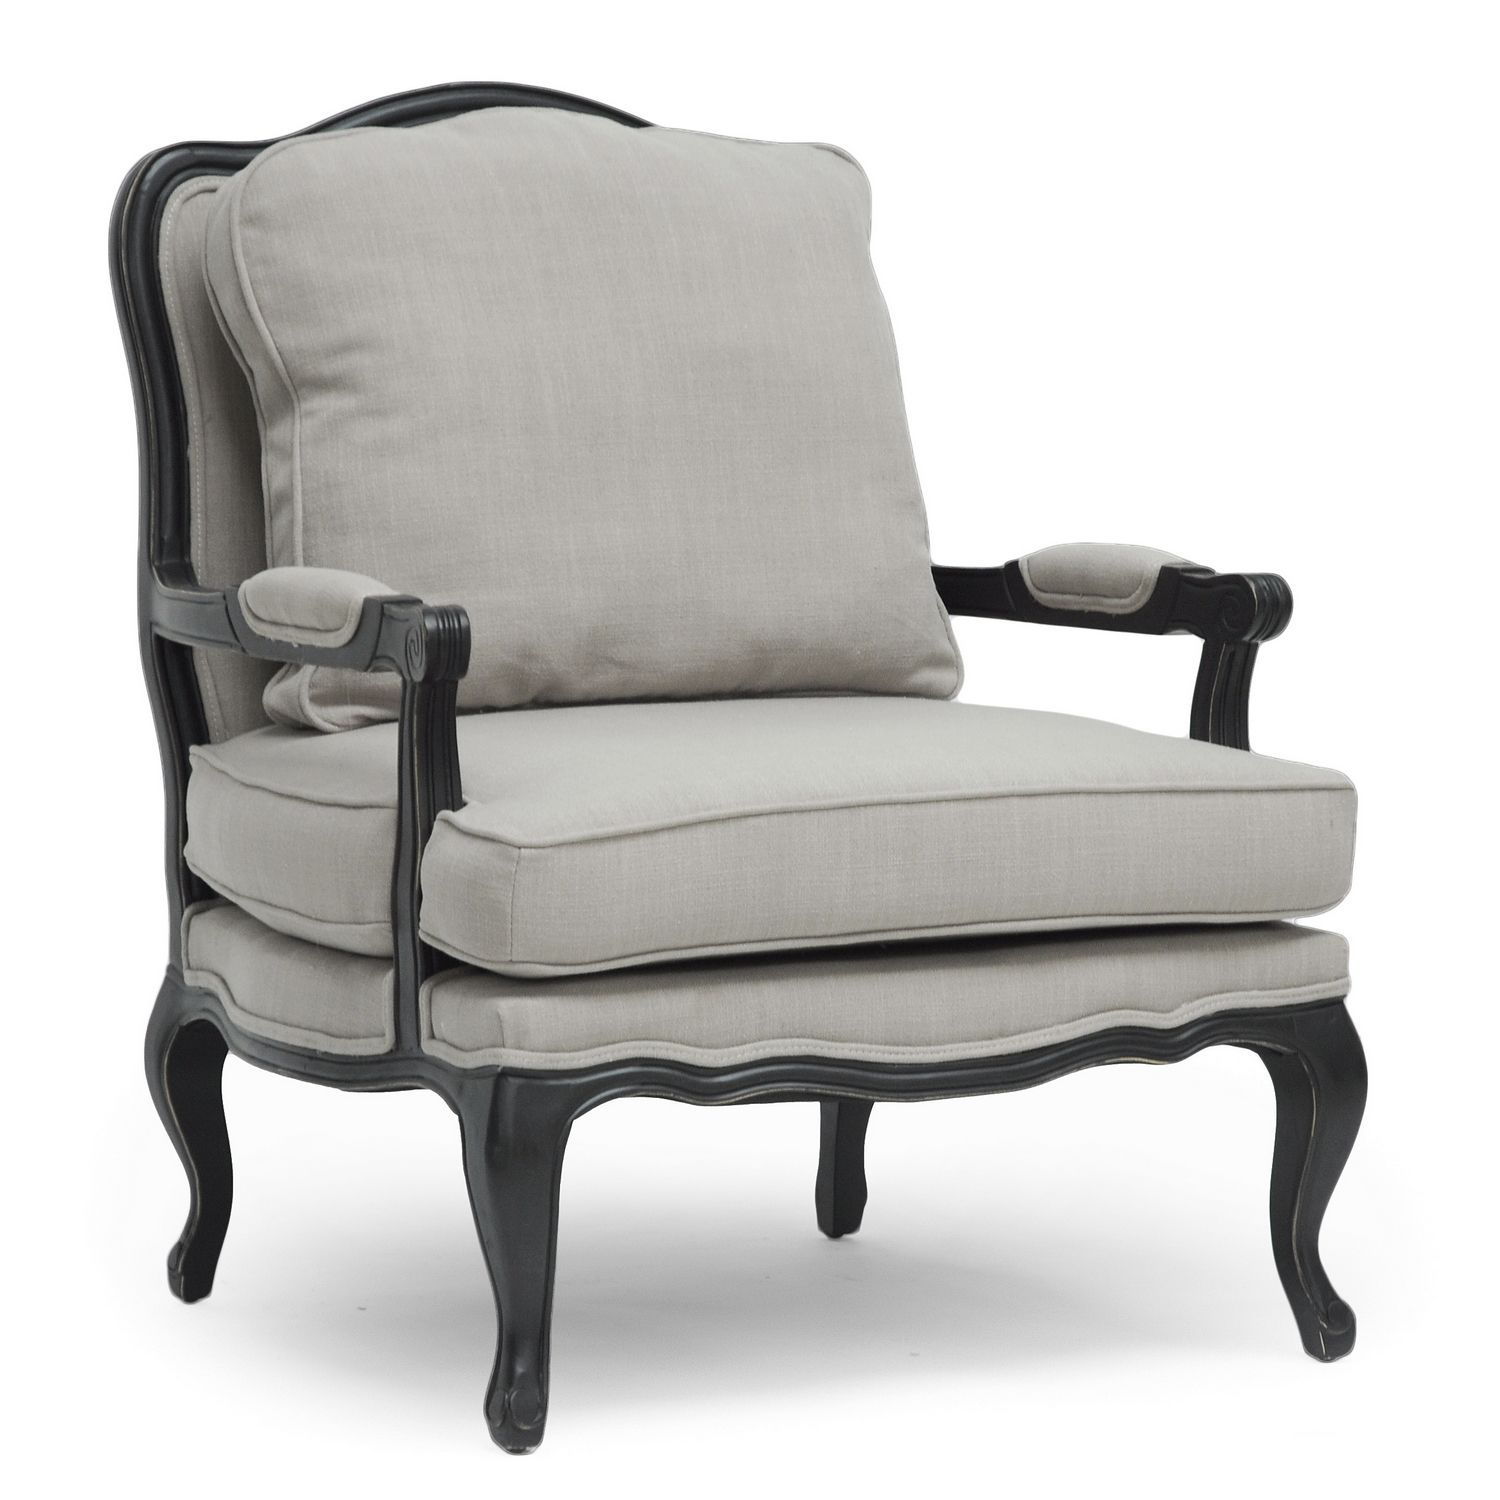 Marvelous Assorted Accent Chairs Under 200 For Your Home Decoration